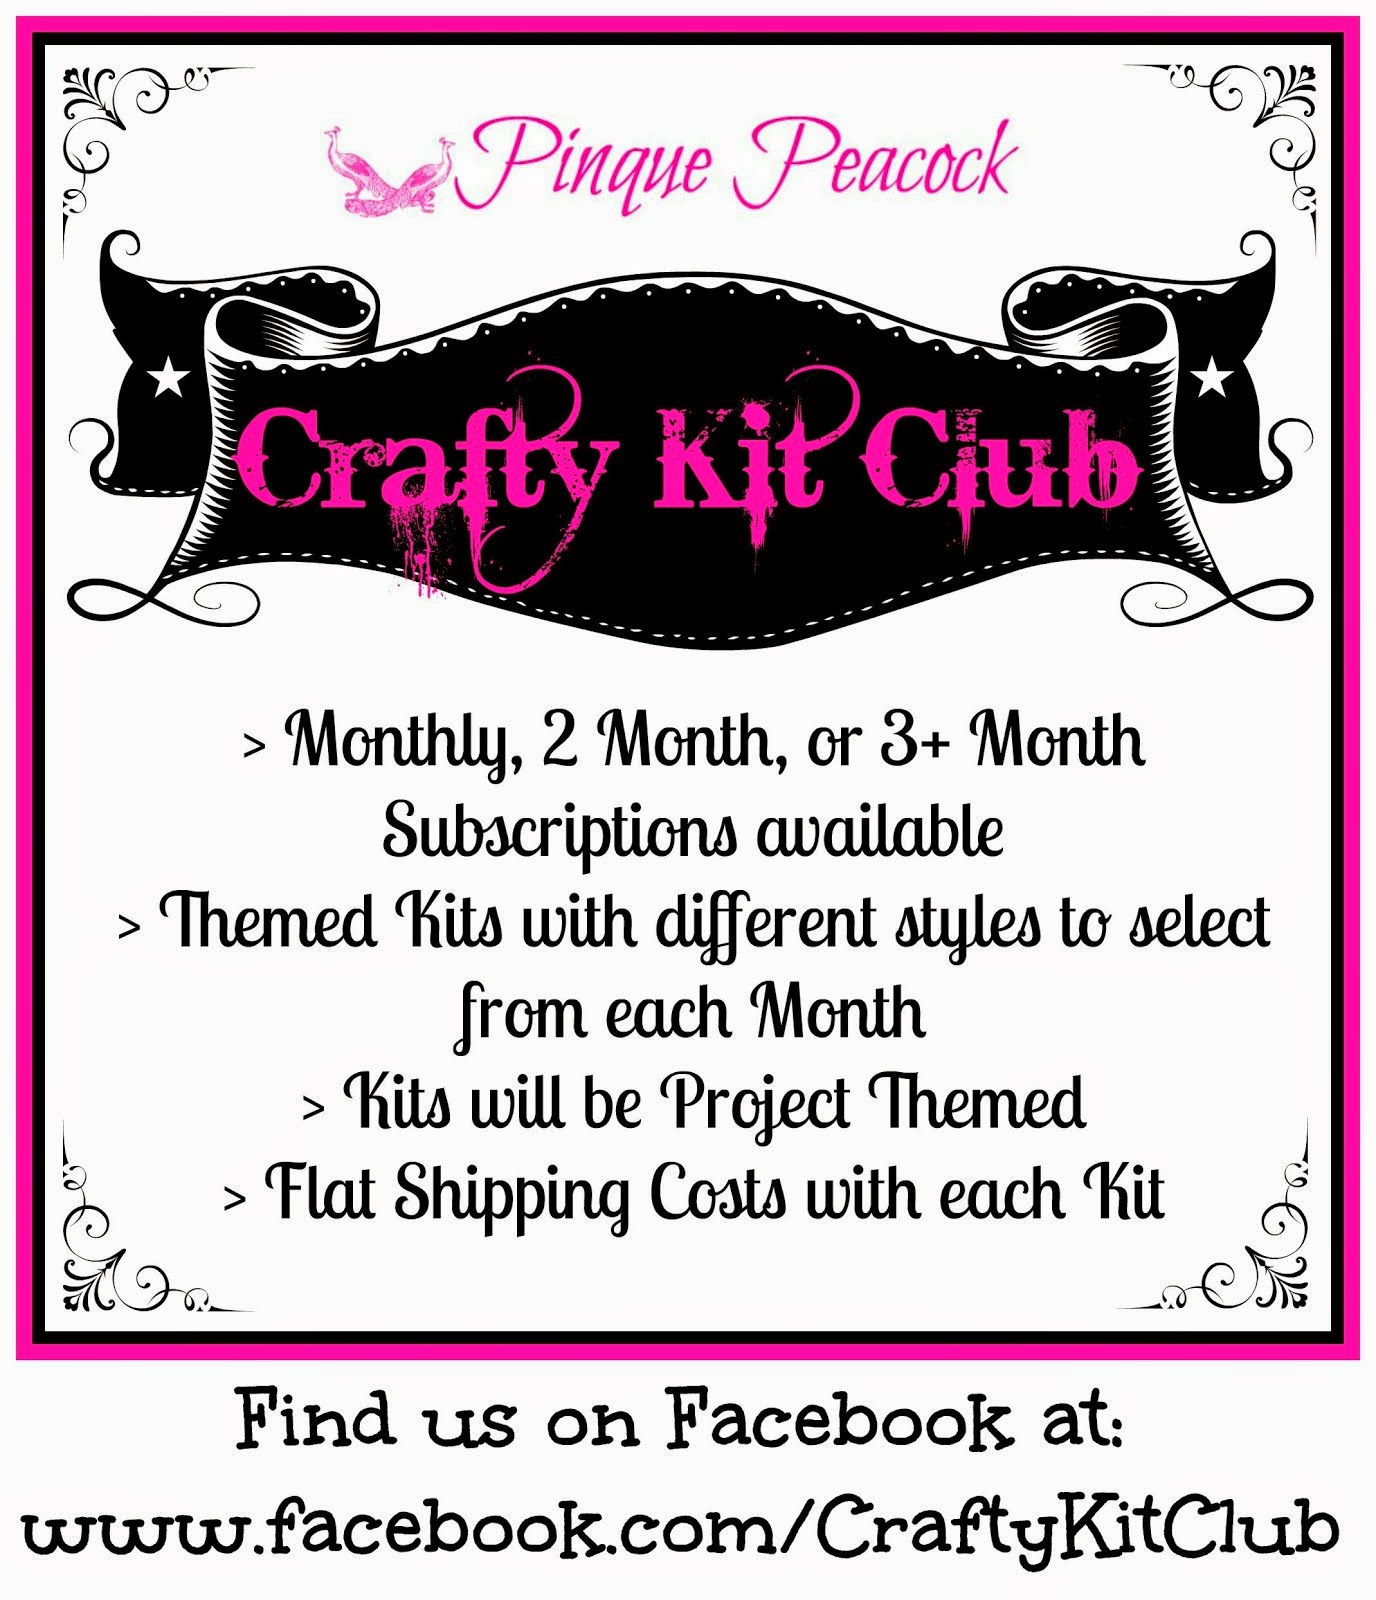 CRAFTY KIT CLUB